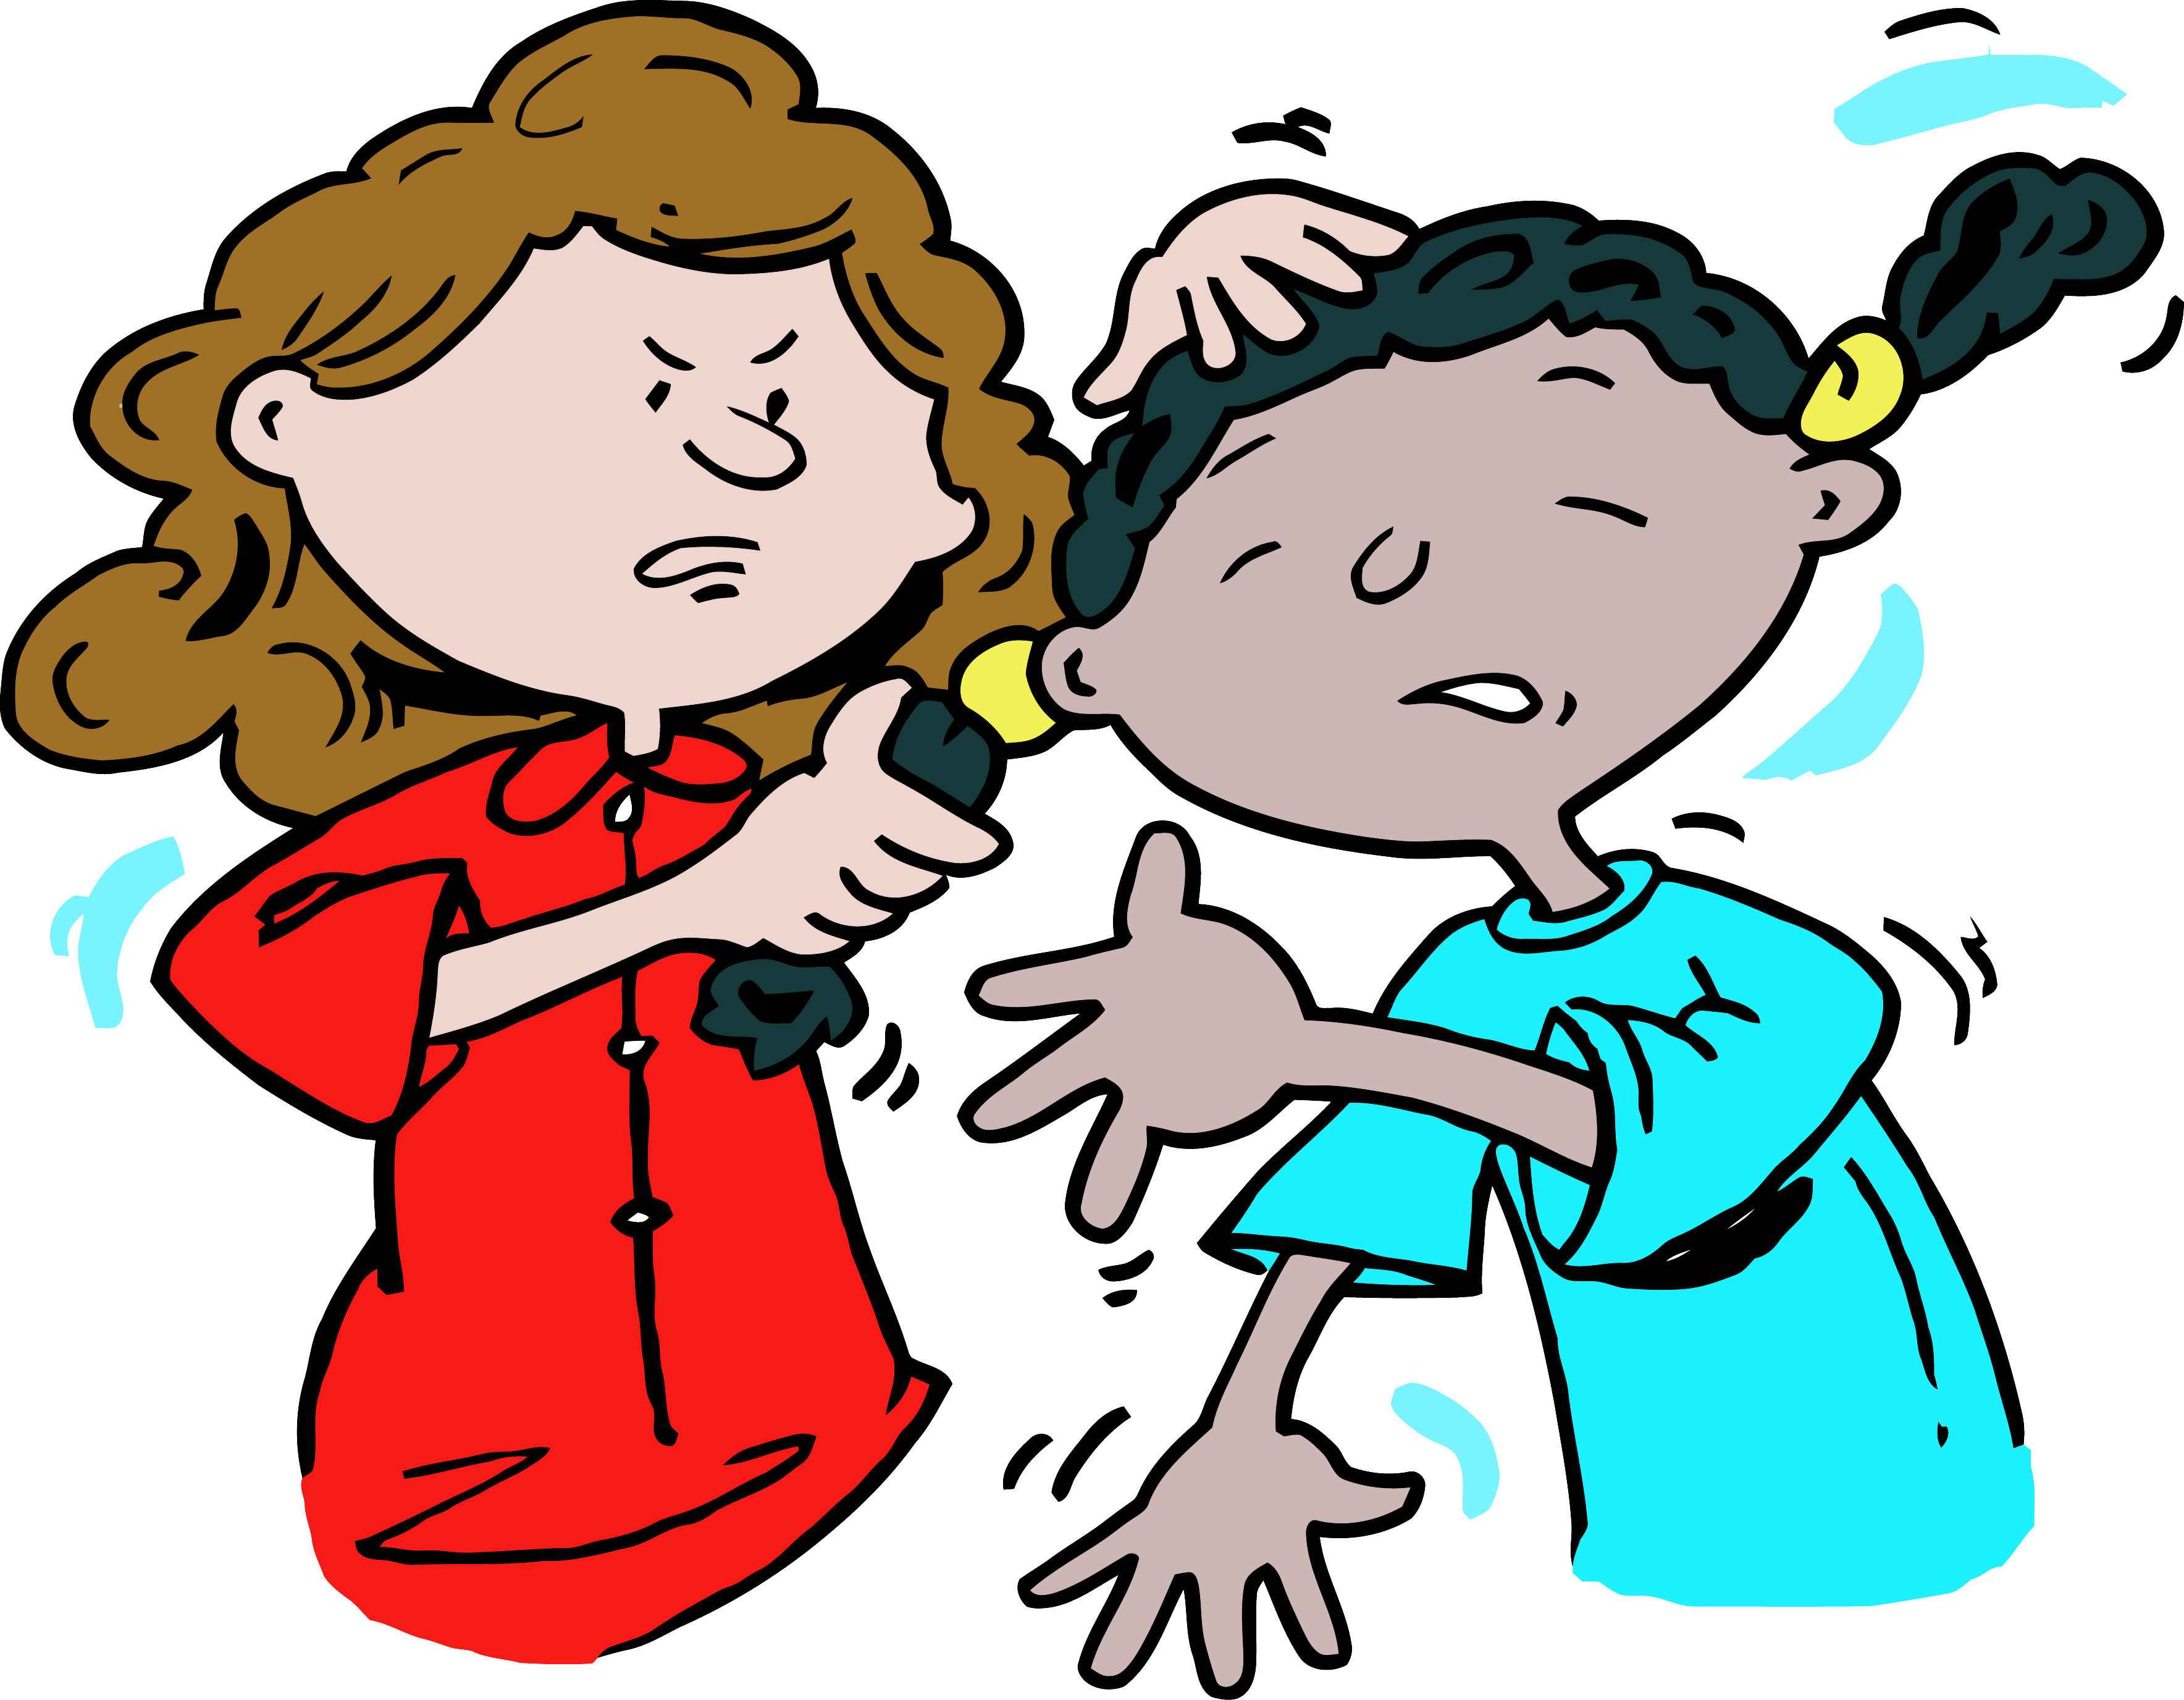 Bullying clipart physical bullying, Picture #136207 bullying.